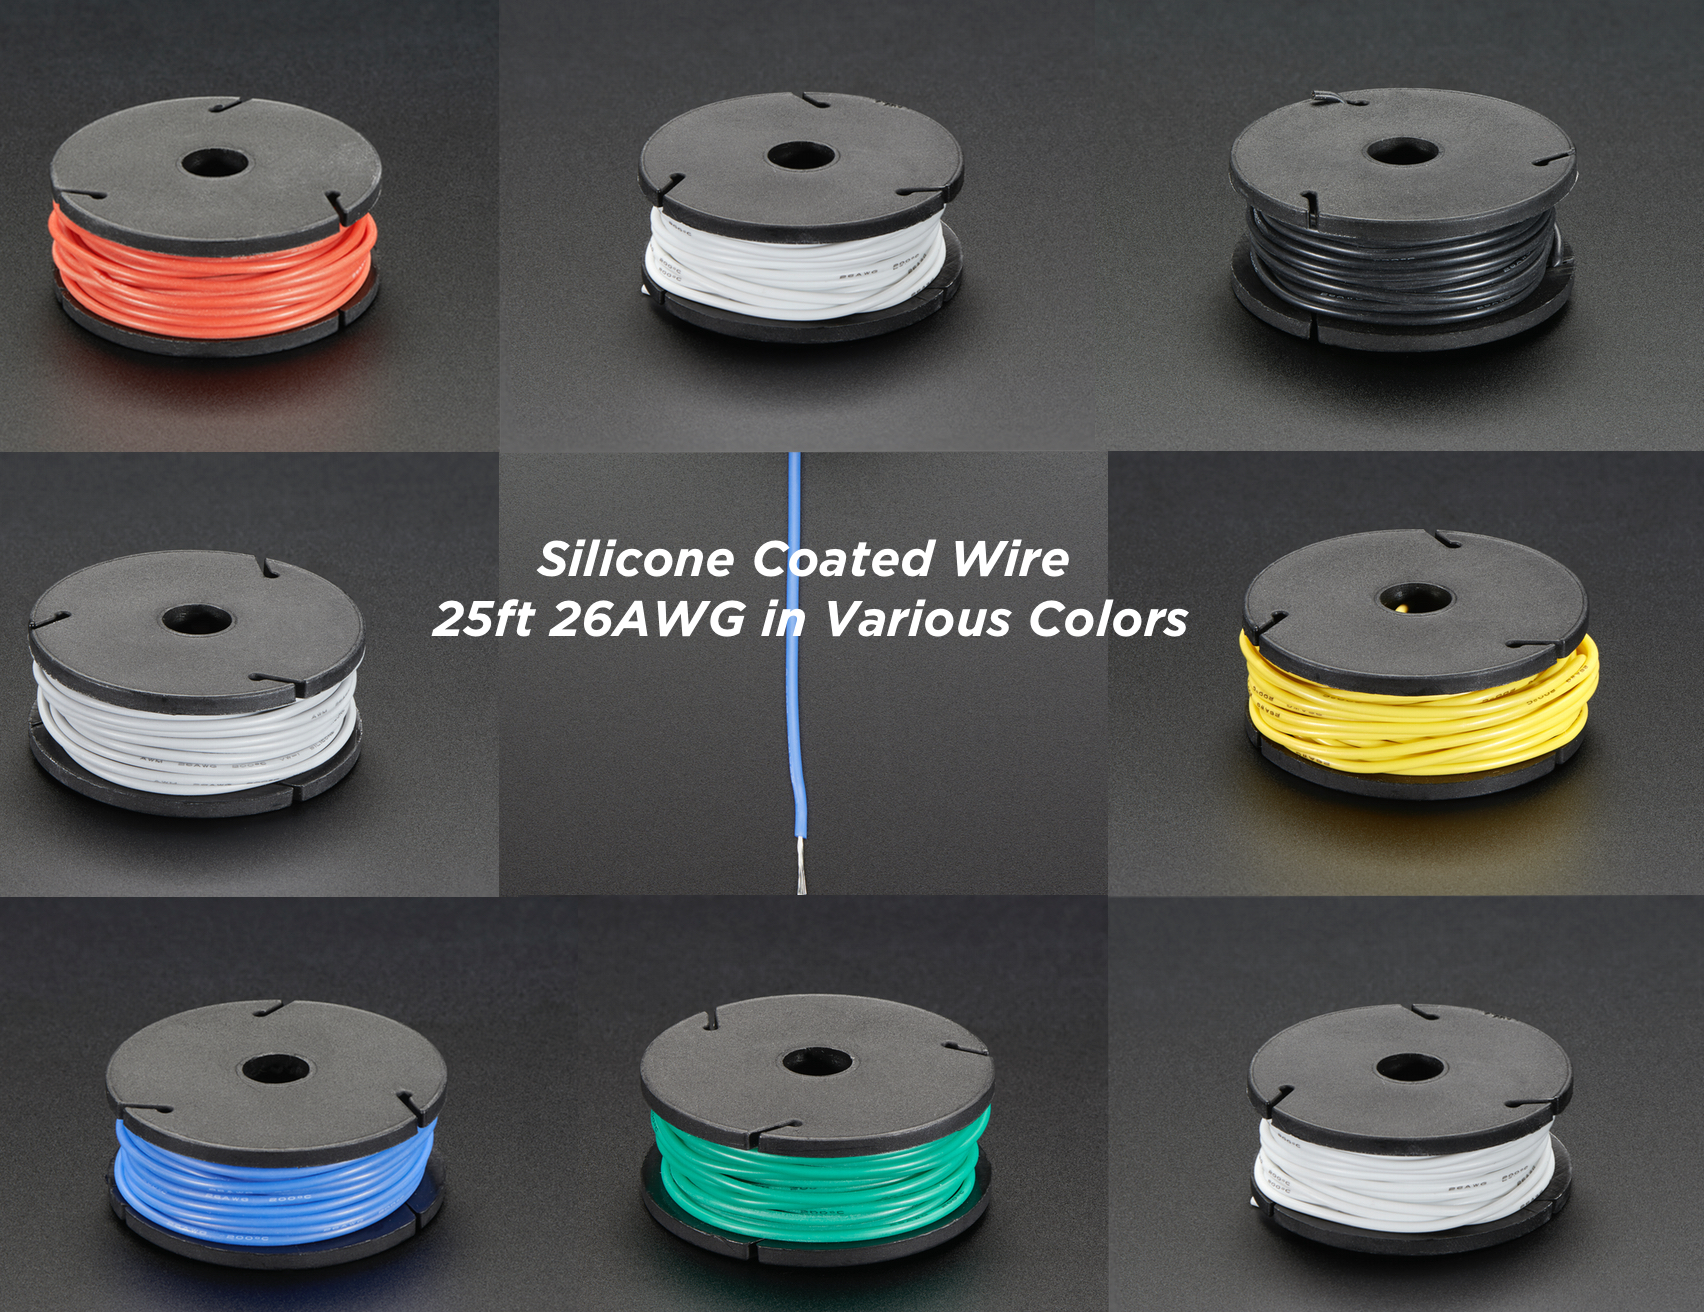 Siliconewires